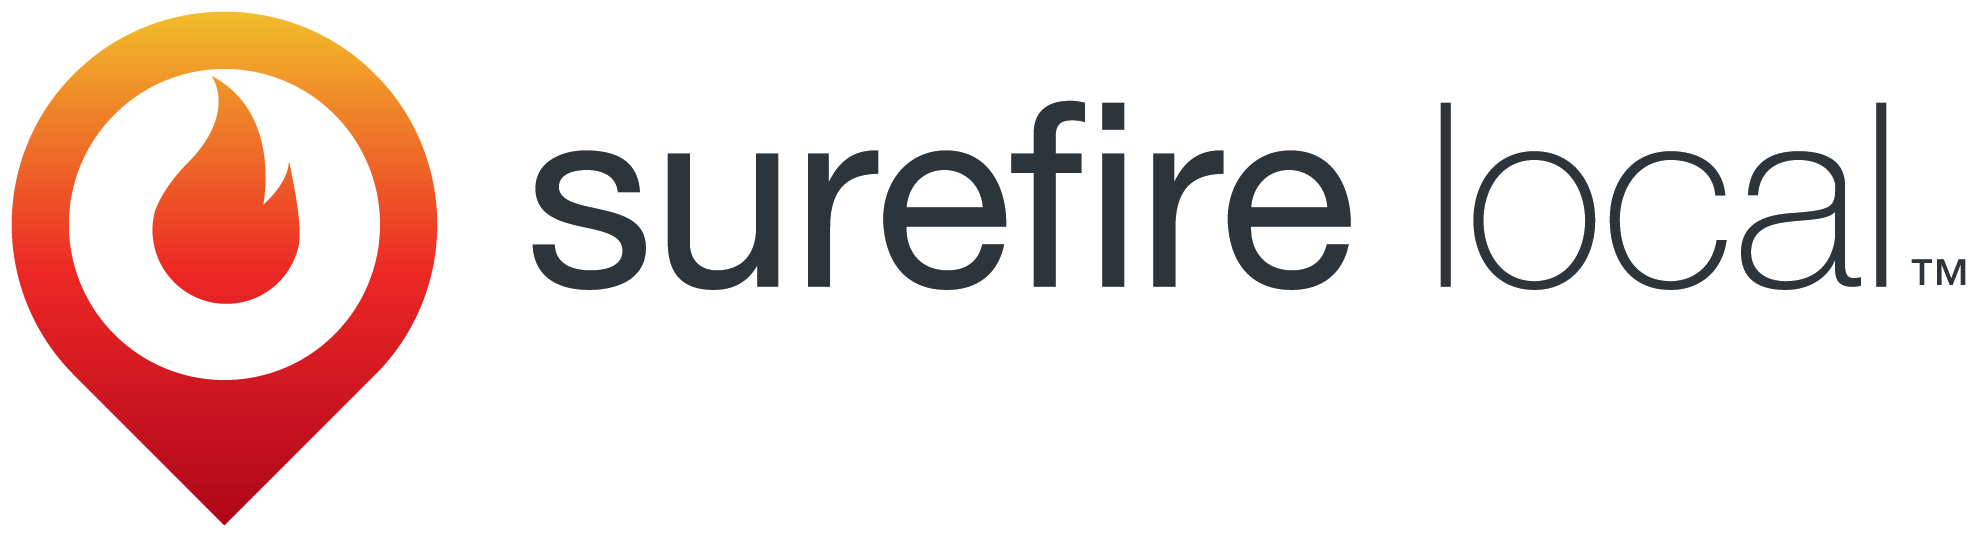 Surefire Local logo-color